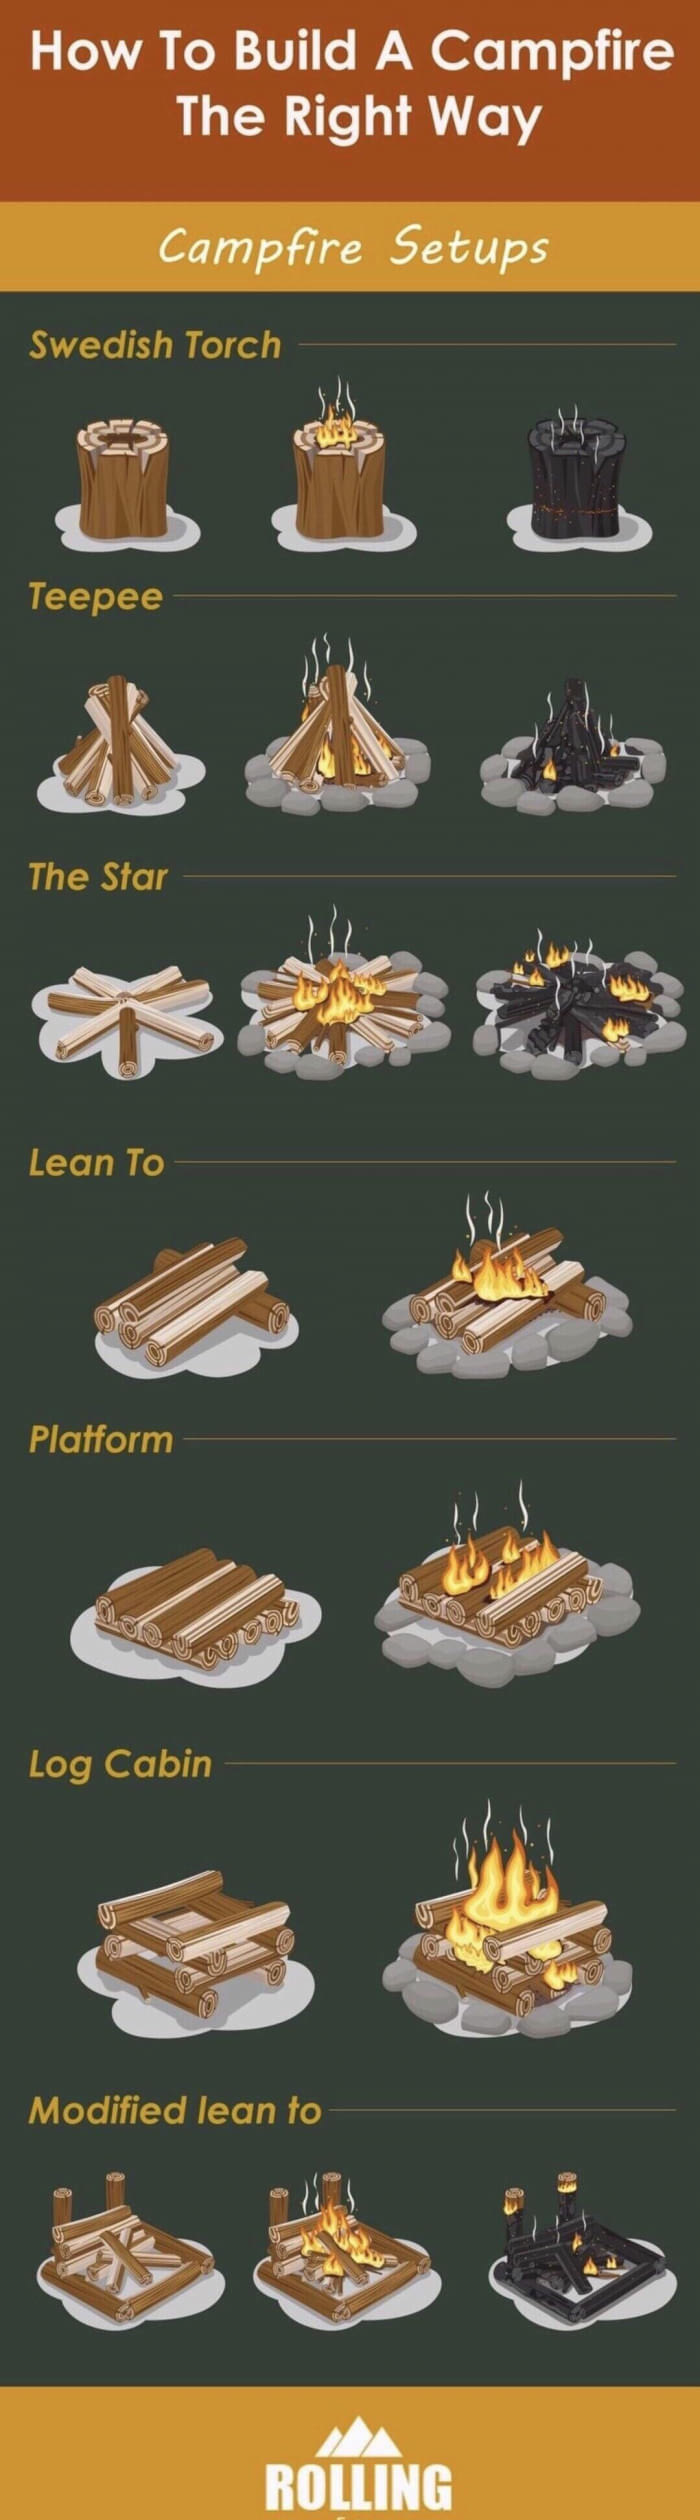 how to build a campfire the right way, campfire setups, swedish torch, teepee, the star, lean to, platform, log cabin, modified lean to